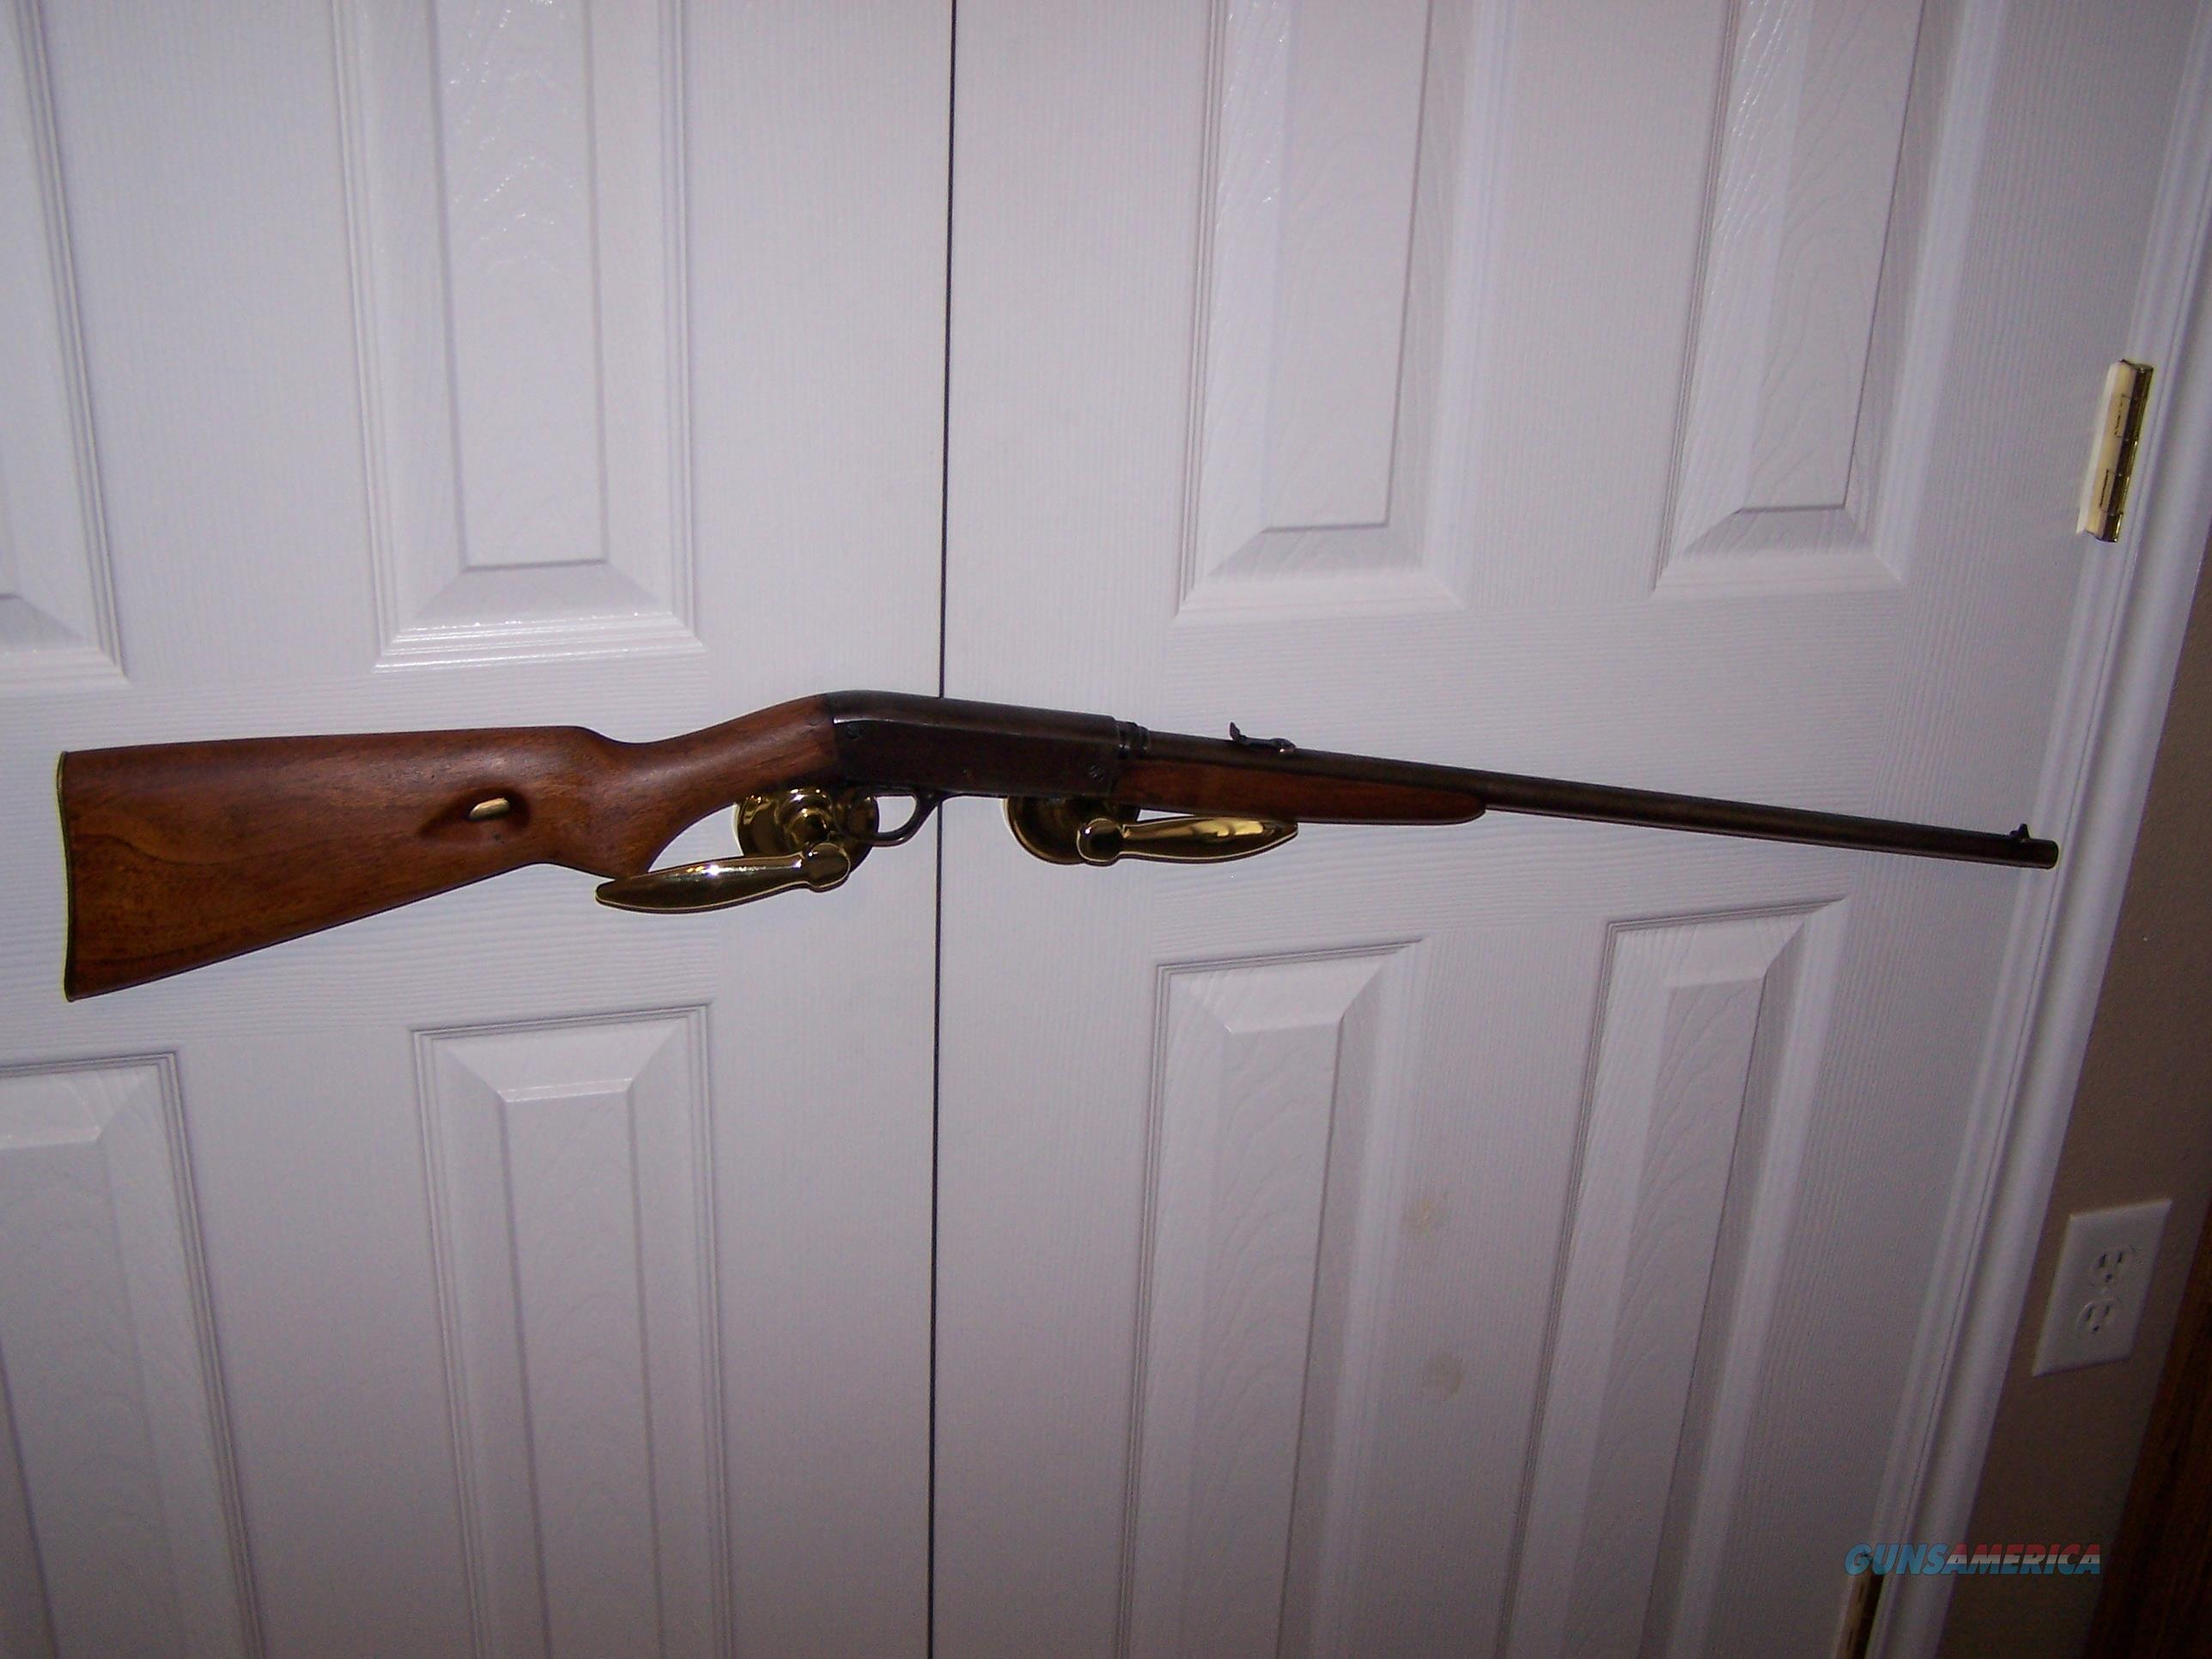 REMINGTON MODEL 24 SEMI AUTO TAKE DOWN 22LR  Guns > Rifles > Remington Rifles - Modern > .22 Rimfire Models